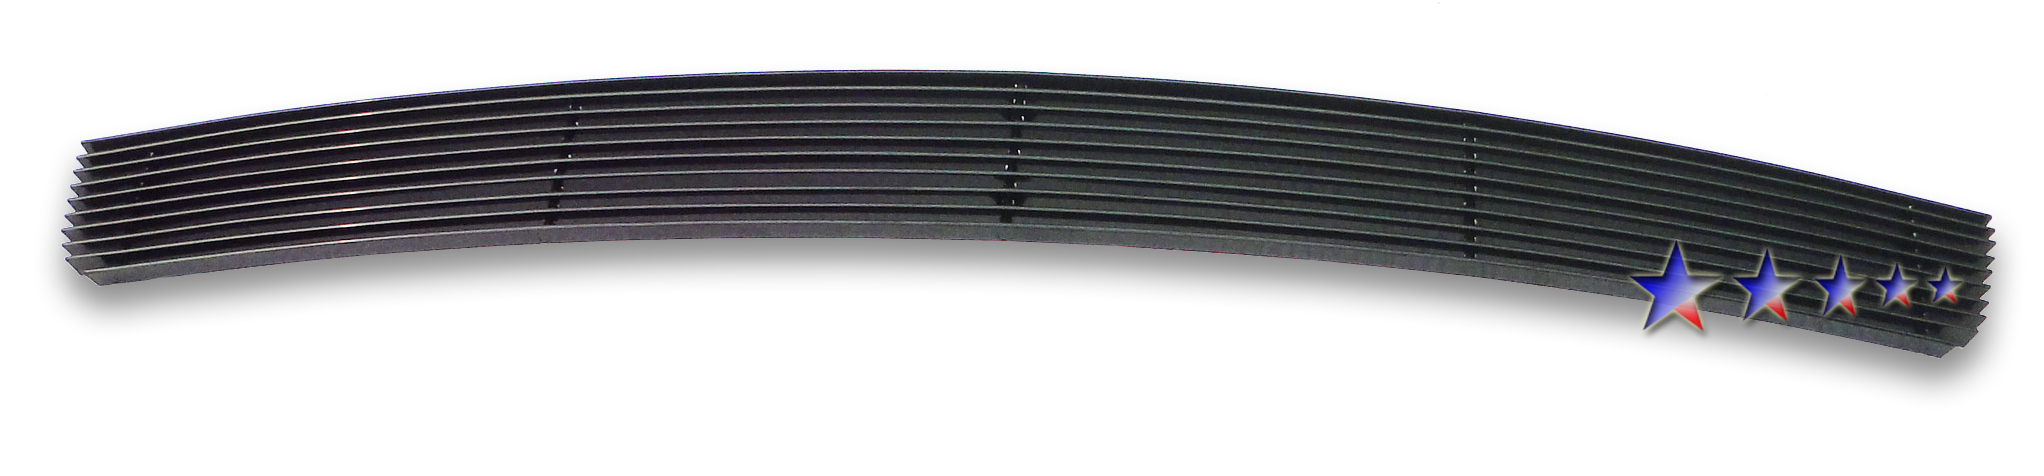 Gmc Sierra Denali 2007-2010 Black Powder Coated Lower Bumper Black Aluminum Billet Grille